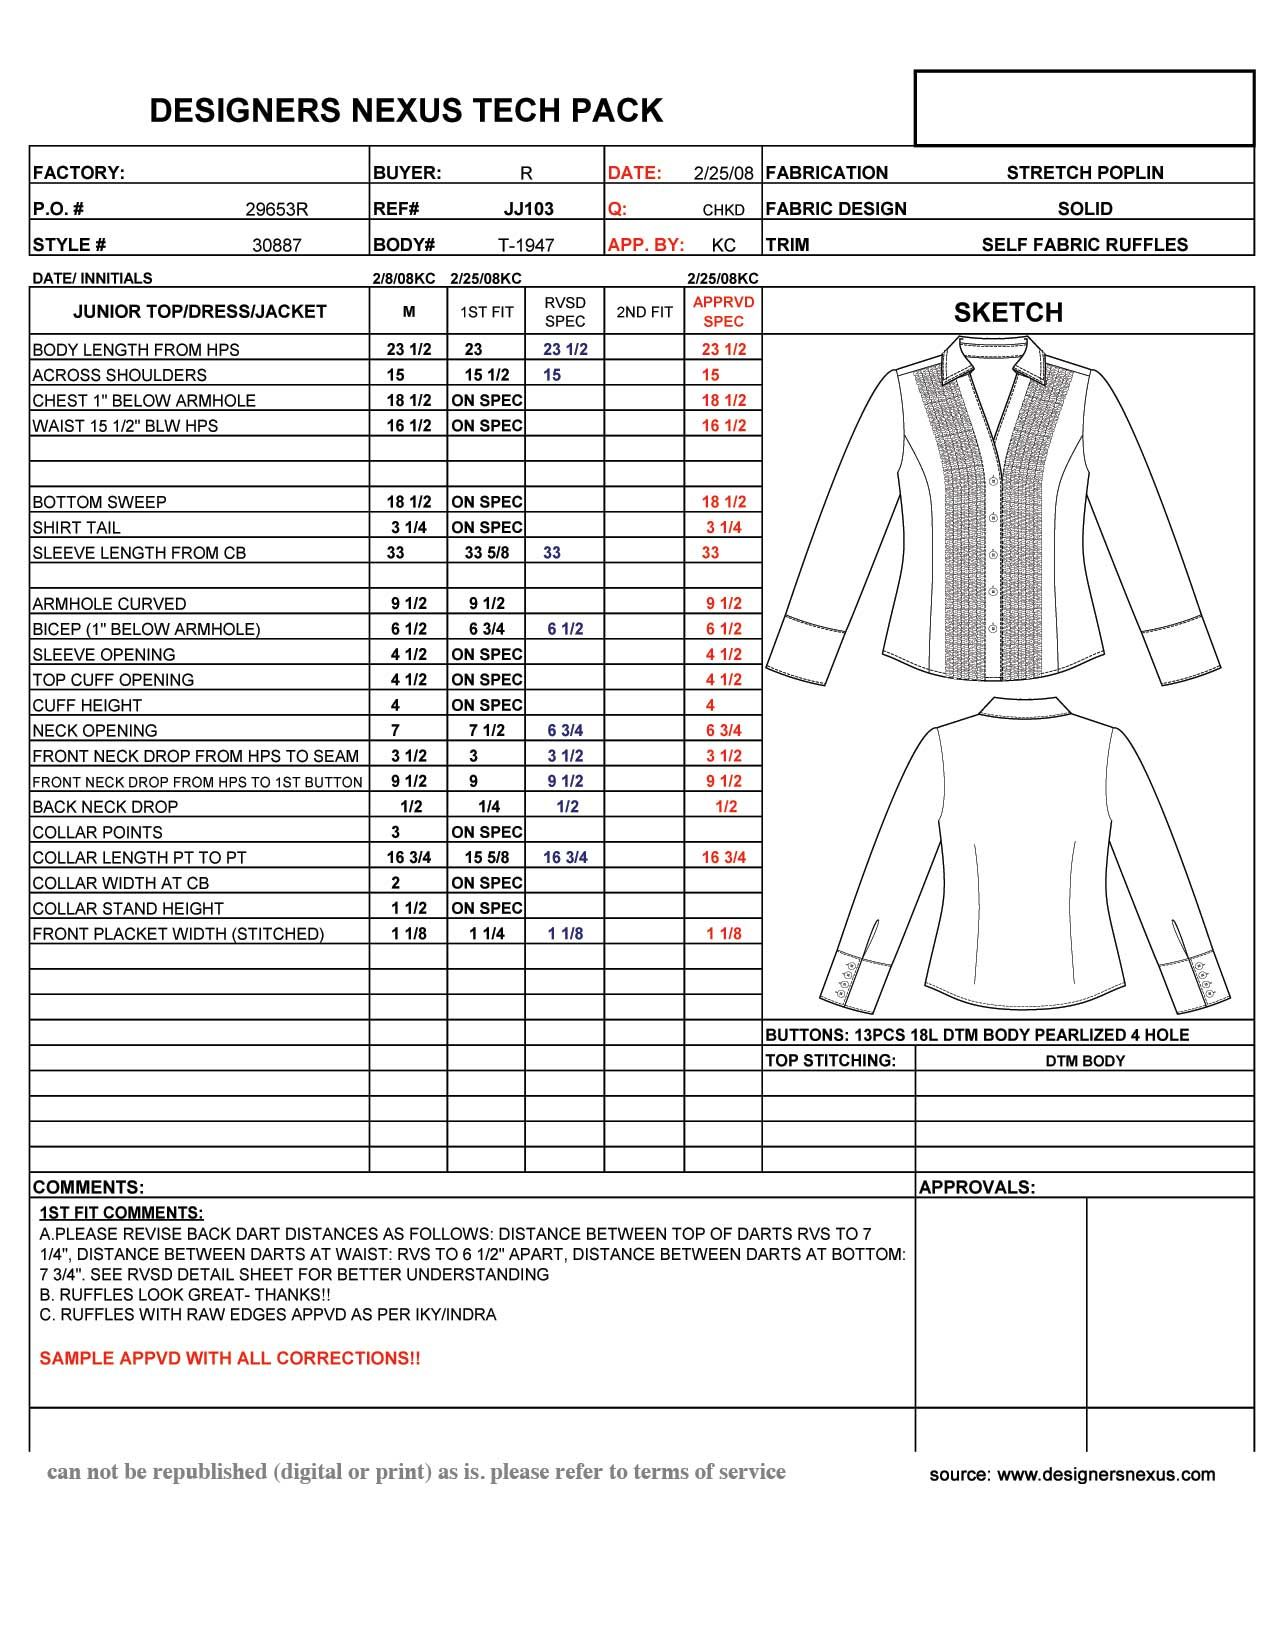 apparel technical design garment fittings